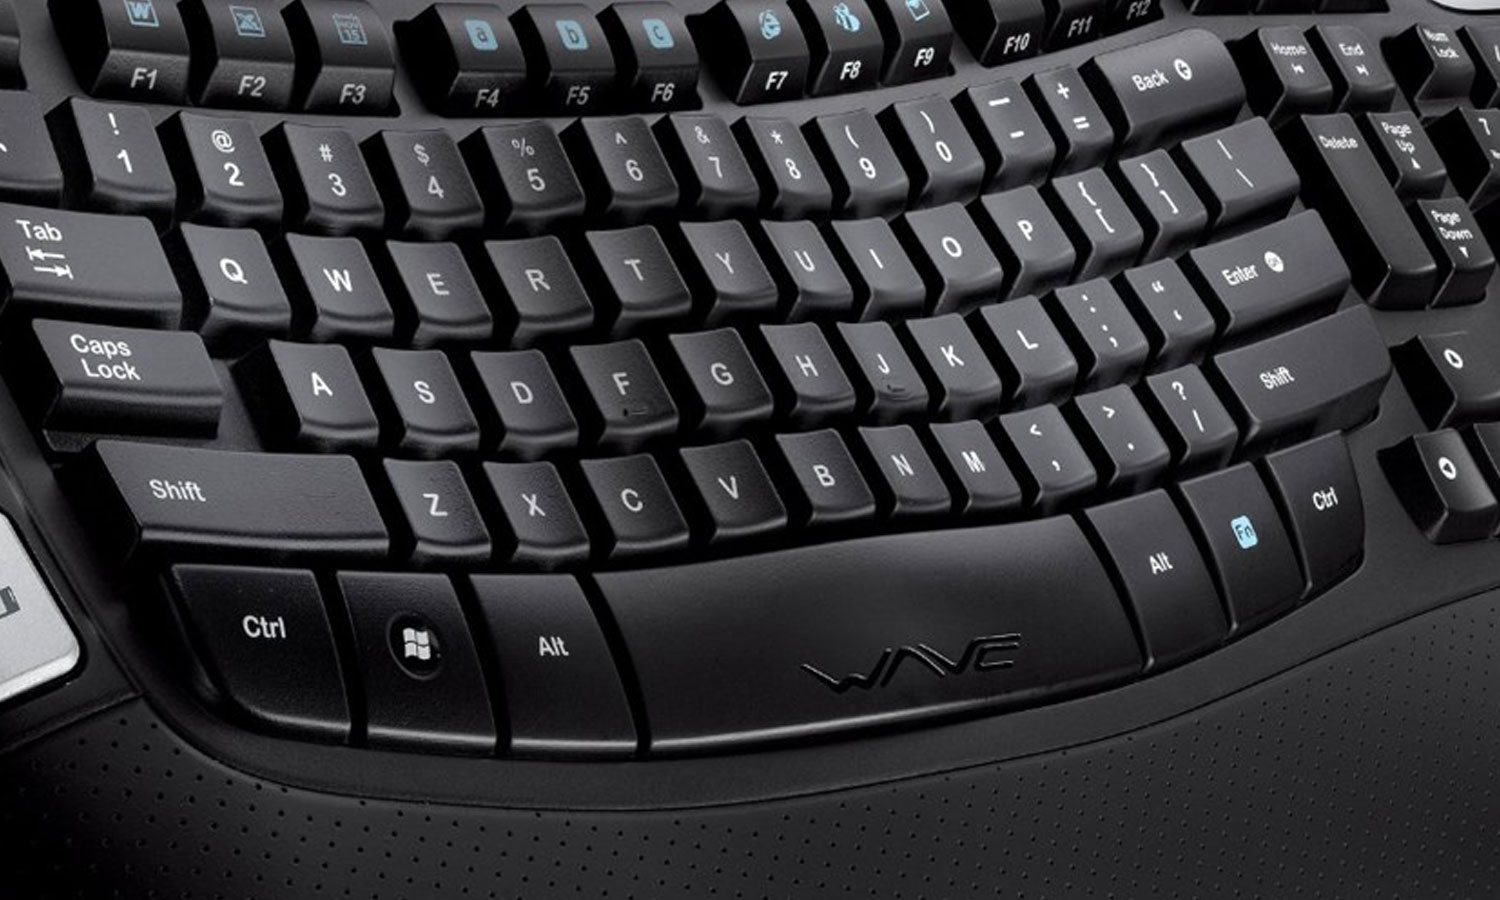 Best Ergonomic Keyboards for Wrist Support, Comfortable